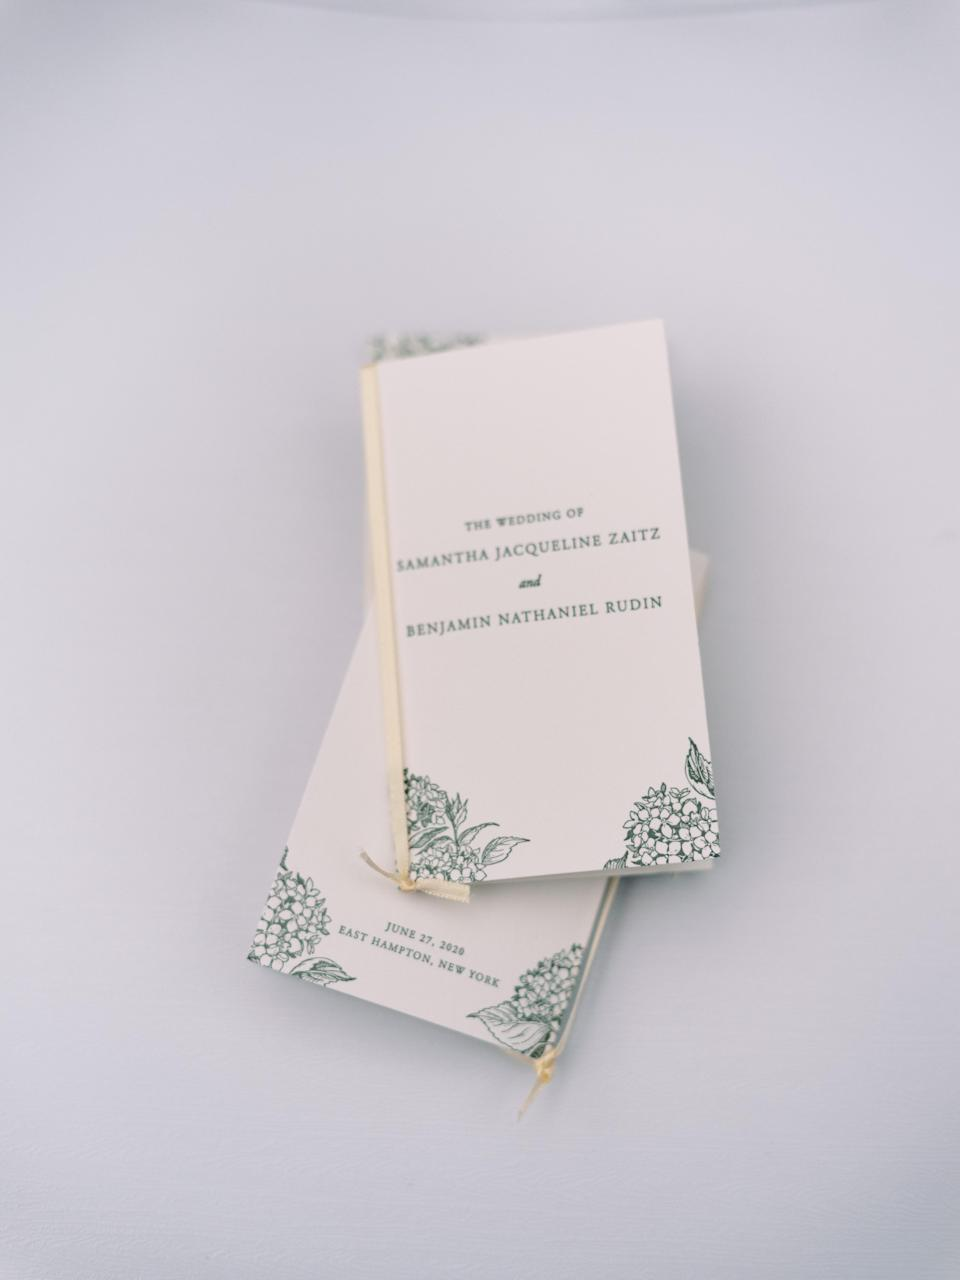 The letterpressed ceremony programs that Fete designed were so beautiful. We felt this was an important keepsake to have from the wedding.